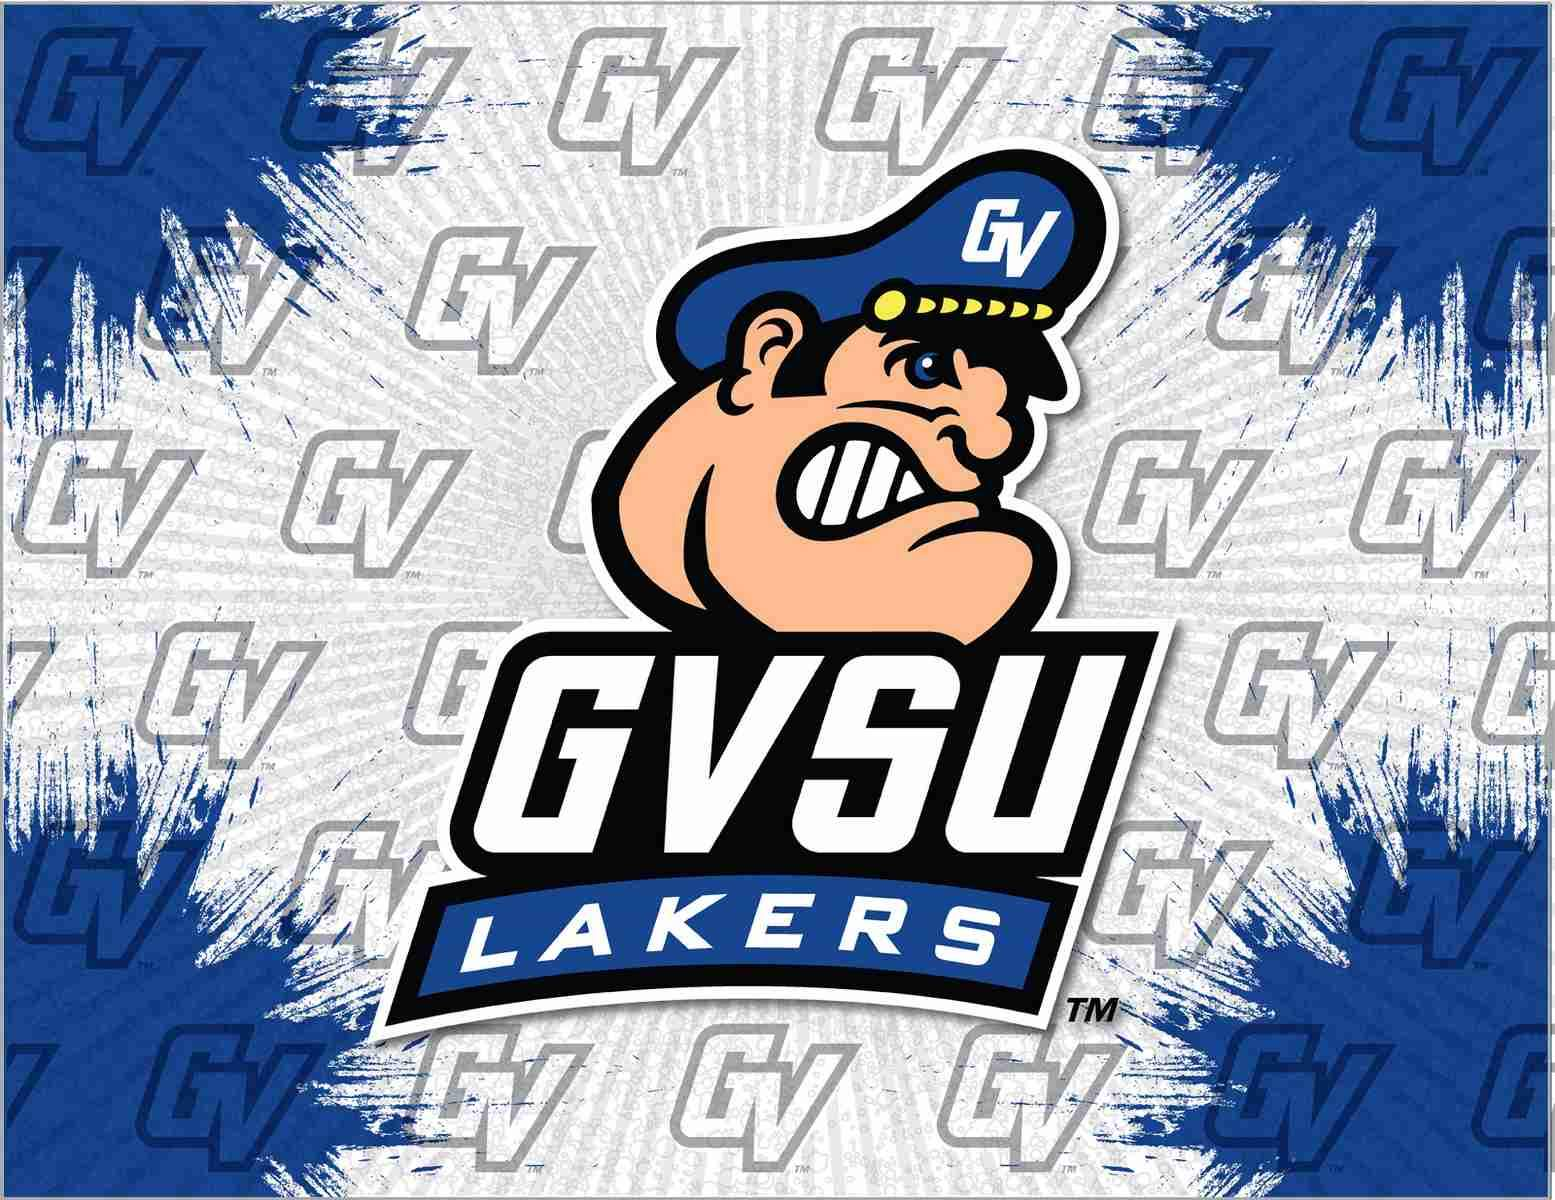 Grand Valley State University Canvas.